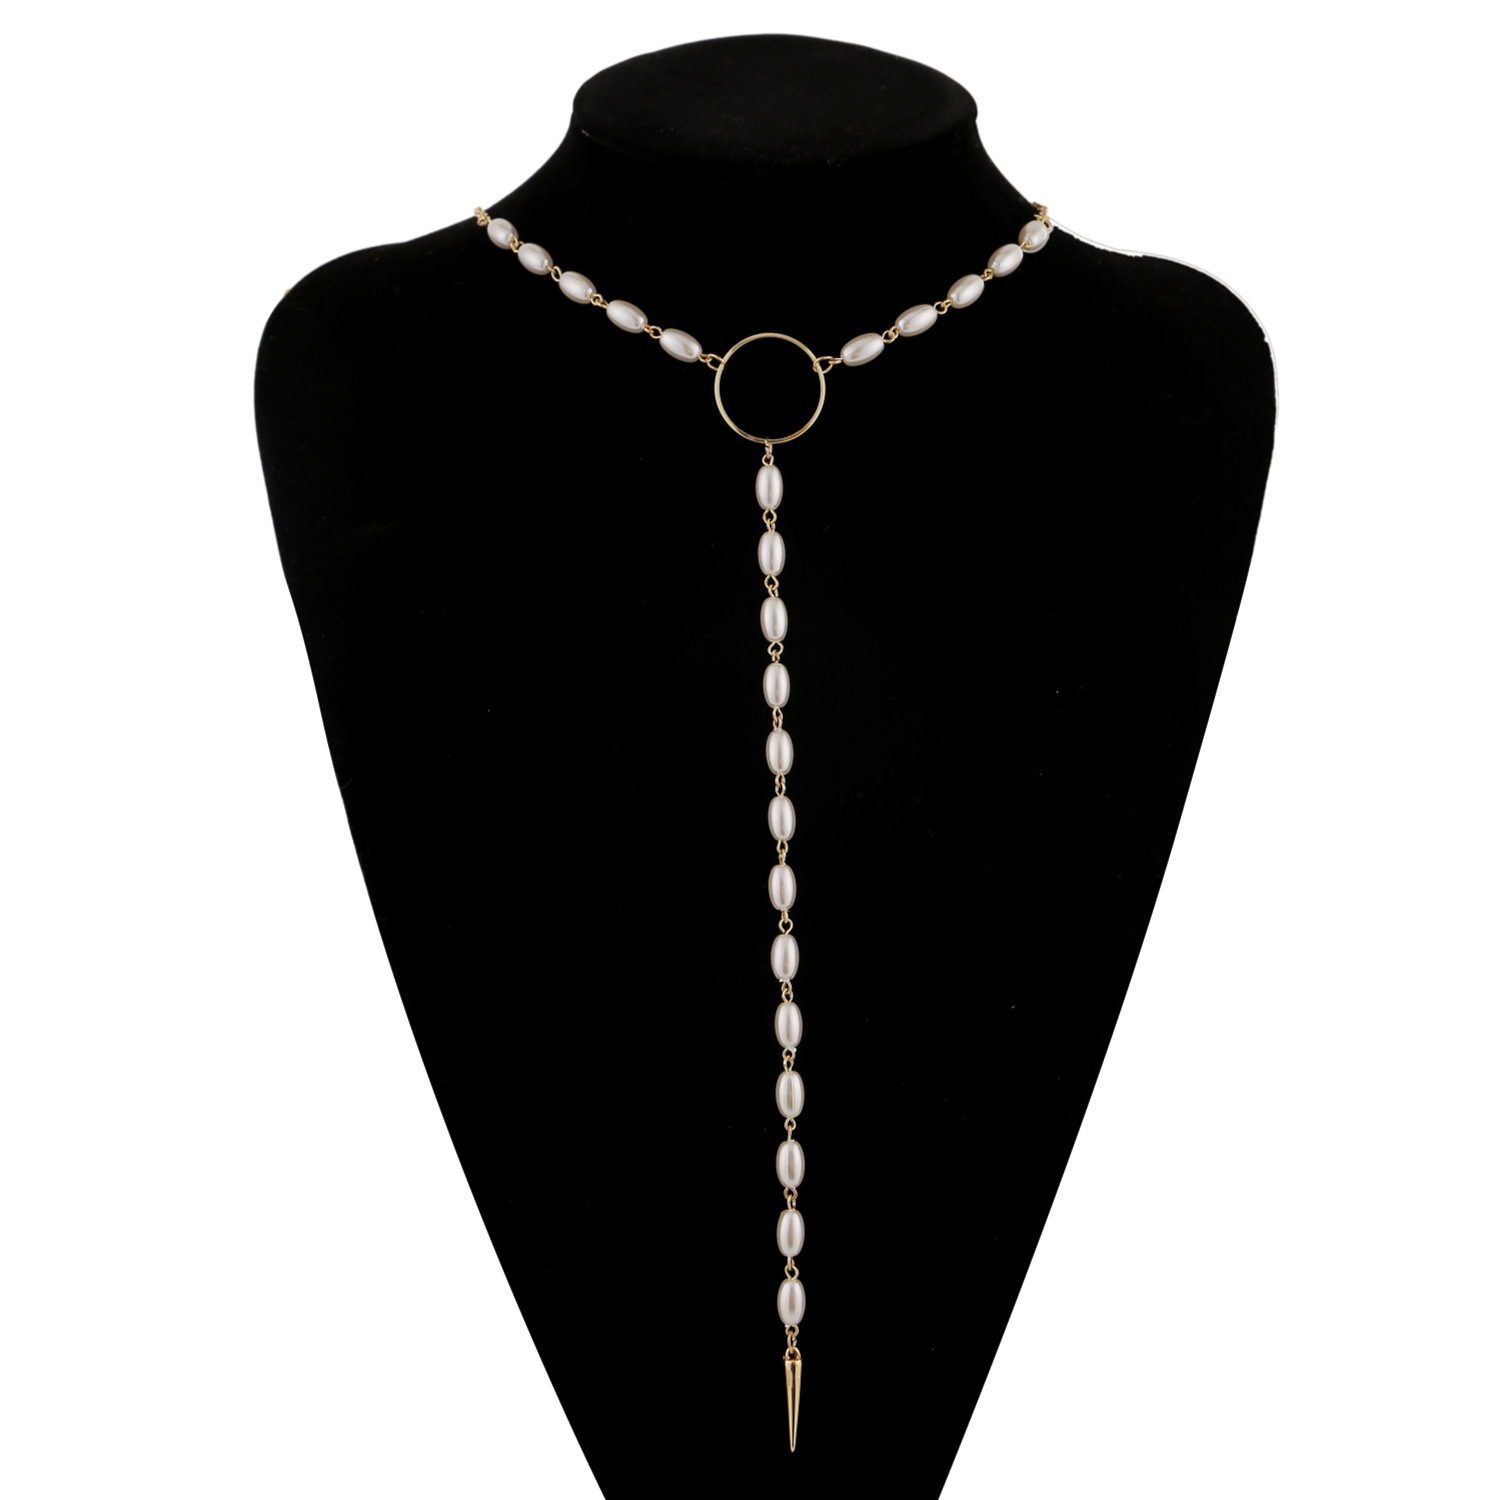 Korean new fashion pearl necklace pendant clavicle chain for women wholesale NHJJ204705